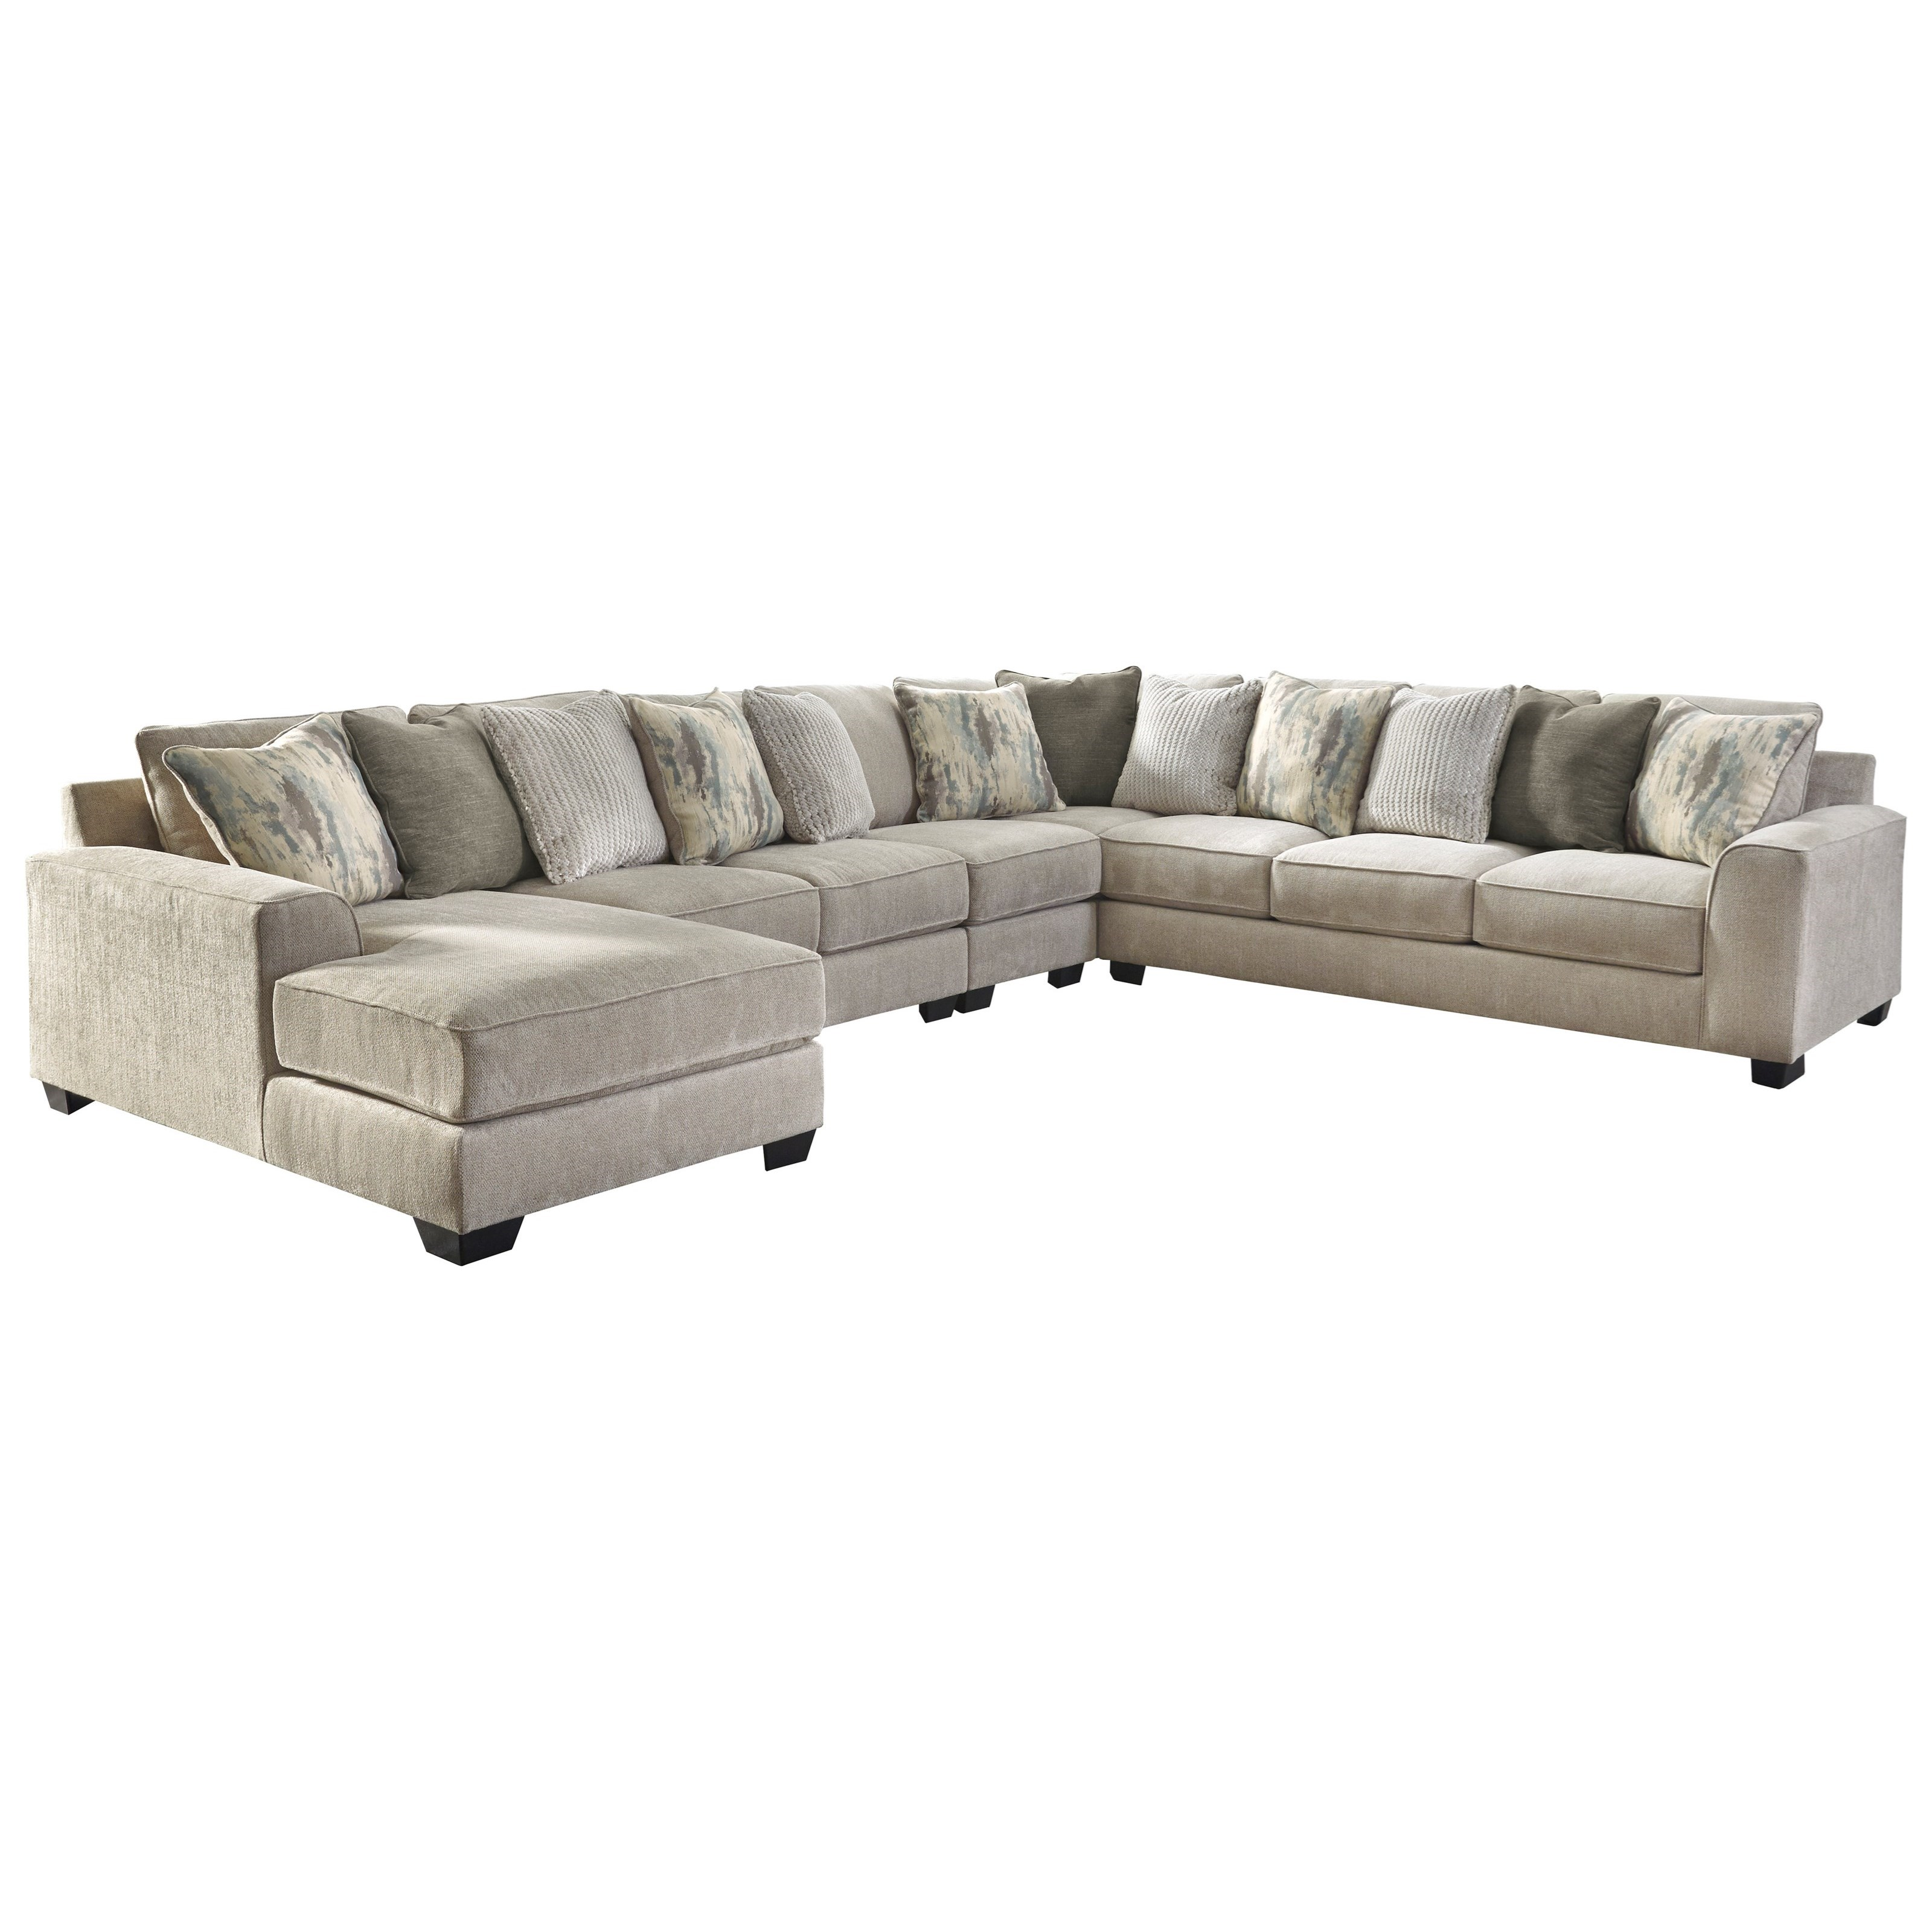 Ardsley 5-Piece Sectional with Left Chaise by Benchcraft at Fisher Home Furnishings